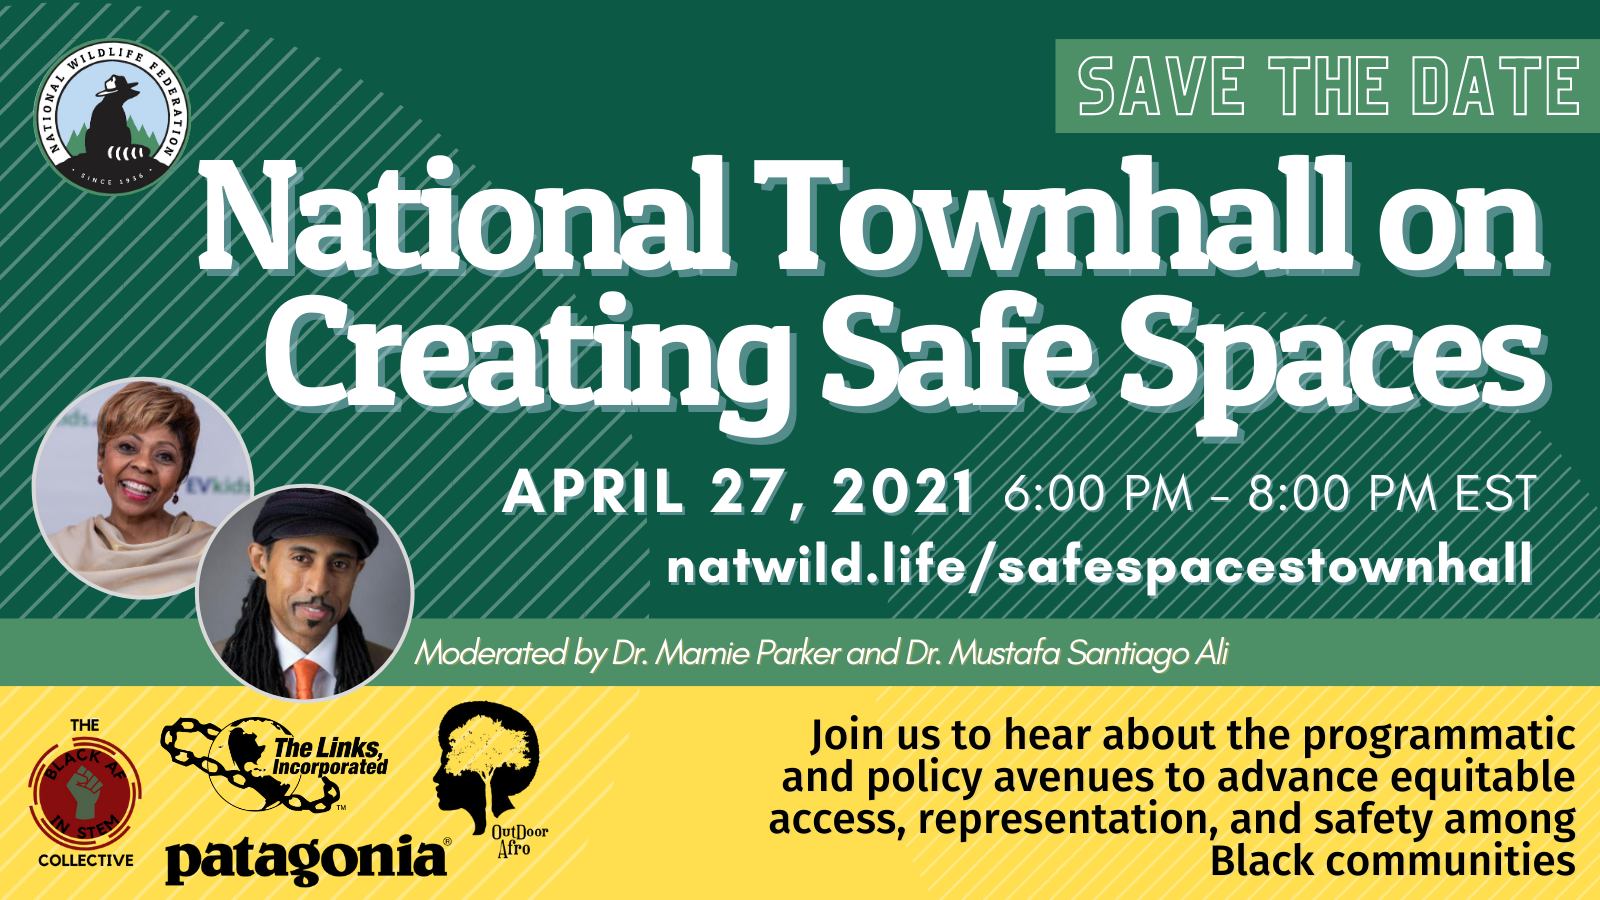 National Wildlife Federation: National Townhall on Creating Safe Spaces